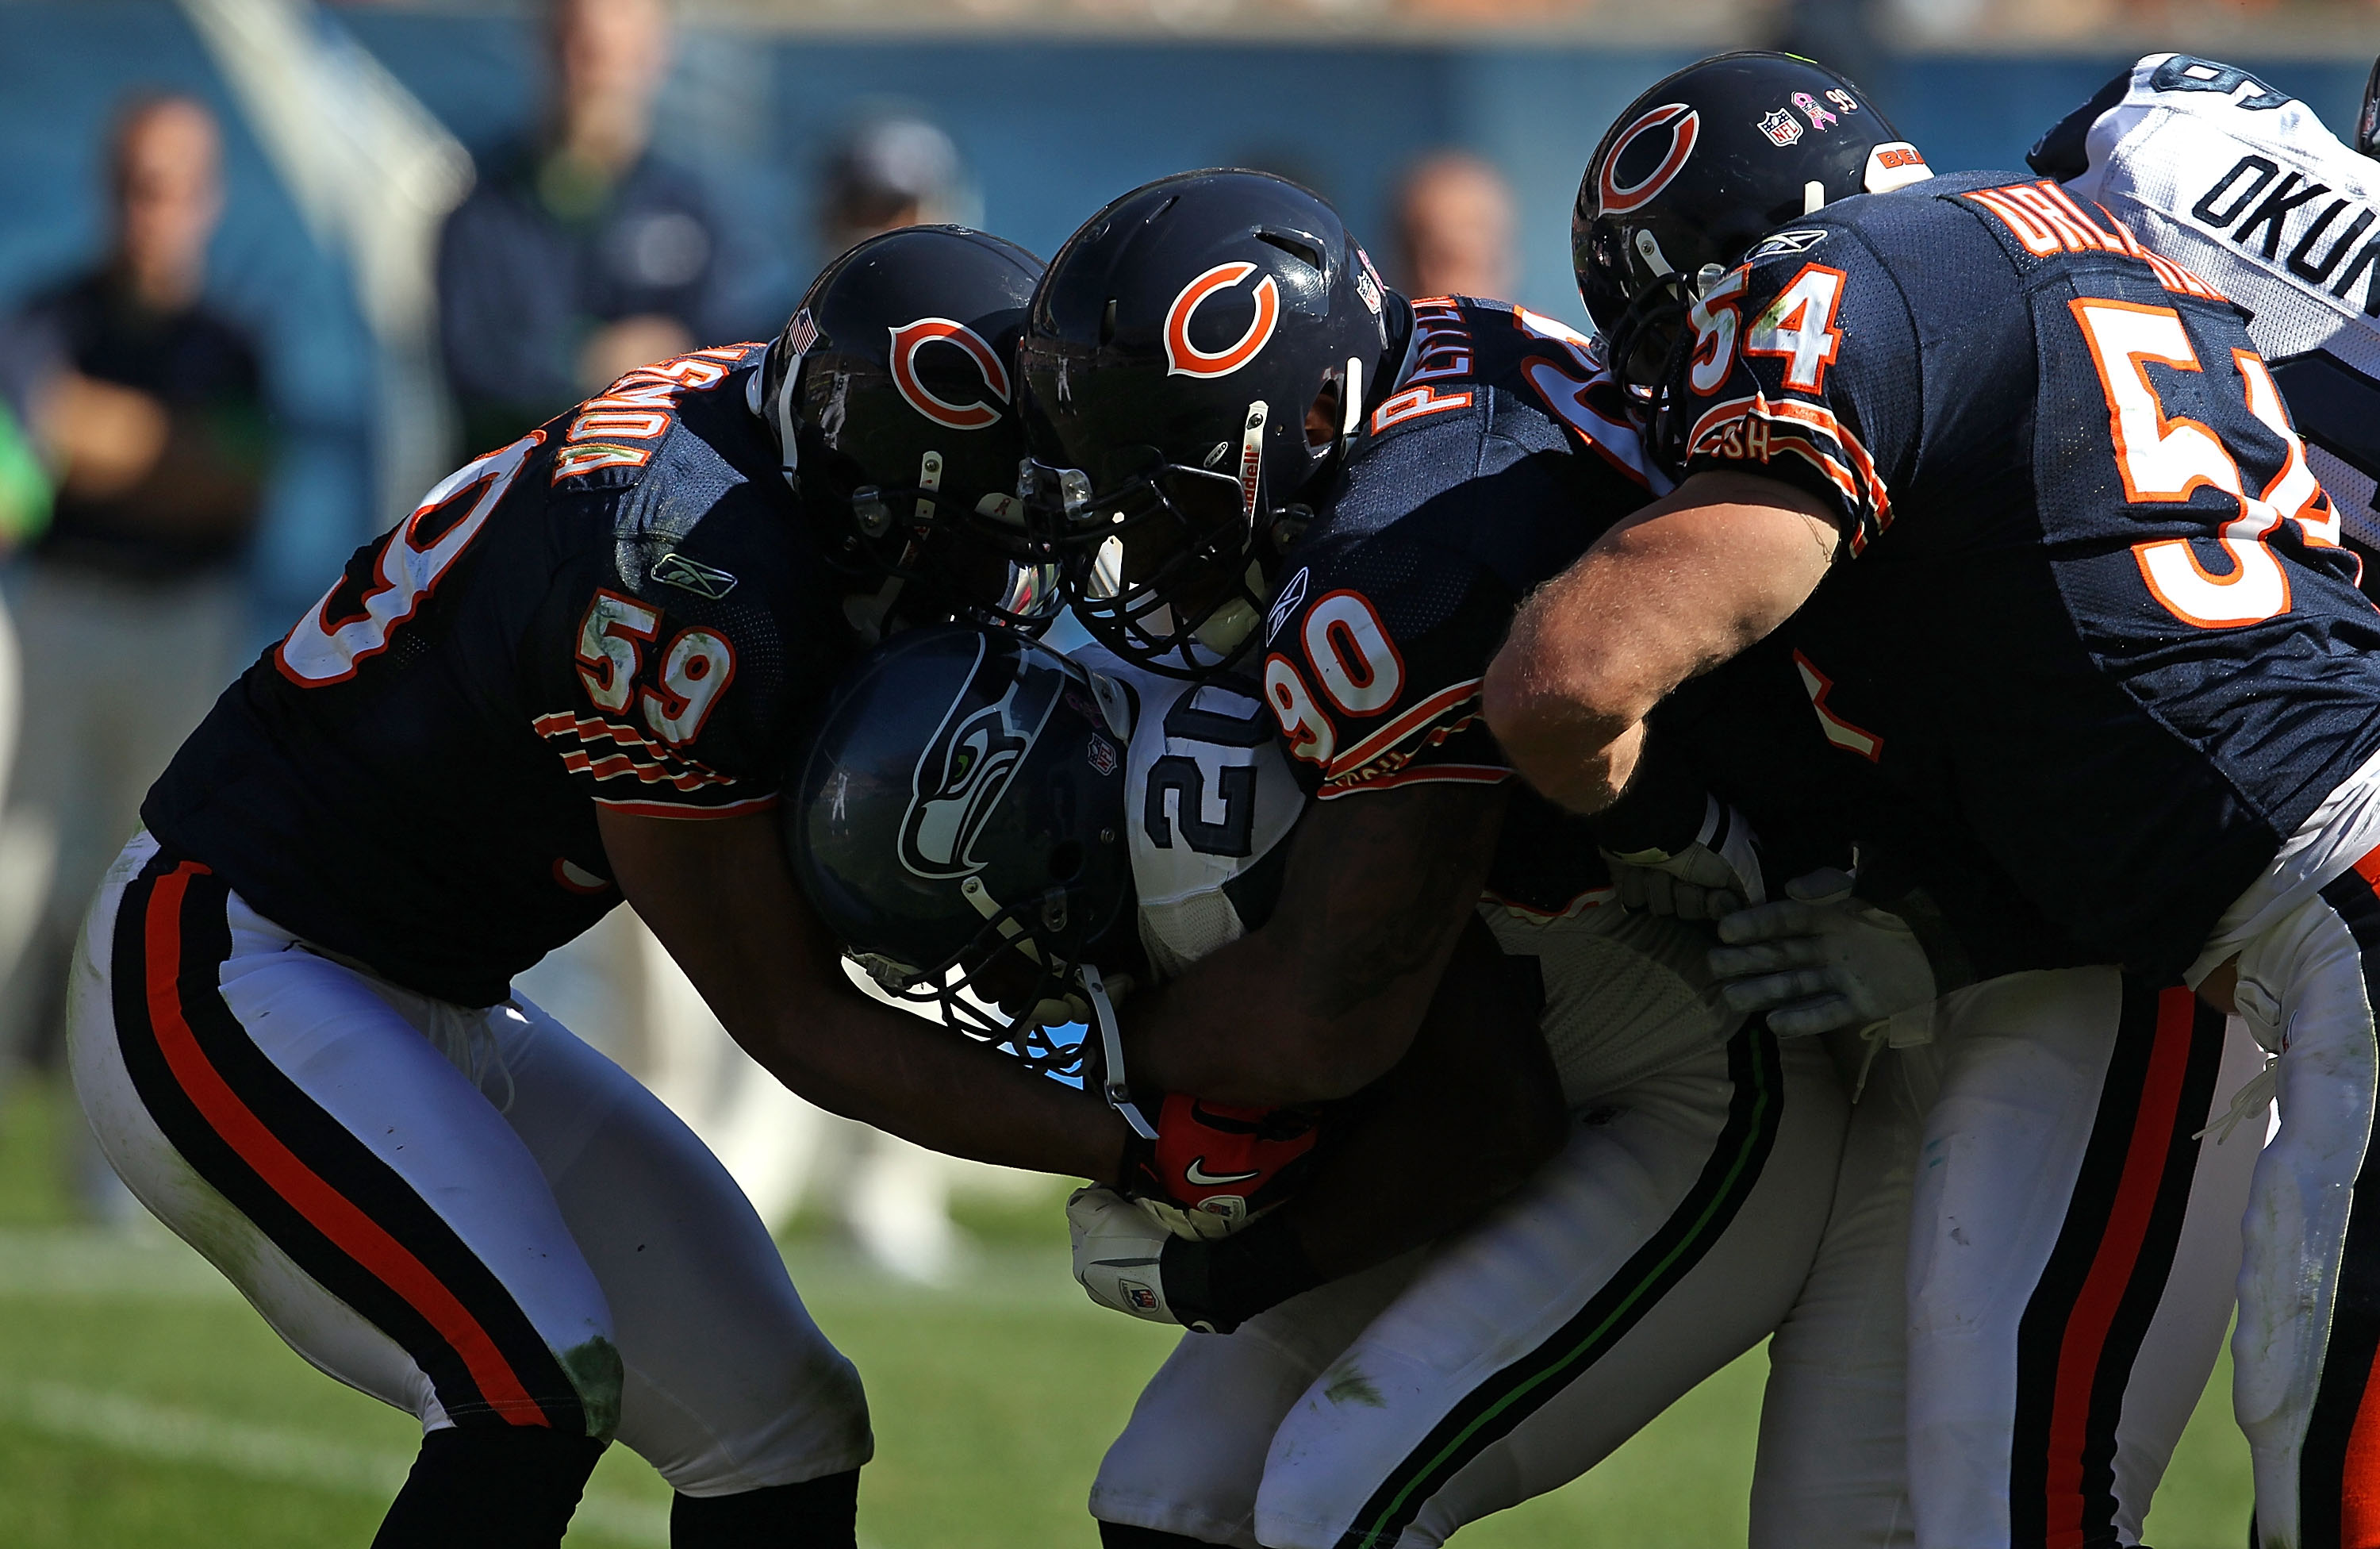 CHICAGO - OCTOBER 17: Justin Forsett #20 of the Seattle Seahawks is tackled by (L-R) Pia Tinoisamoa #59, Julius Peppers #90 and Brian Urlacher #54 of the Chicago Bears at Soldier Field on October 17, 2010 in Chicago, Illinois. The Seahawks defeated the Be